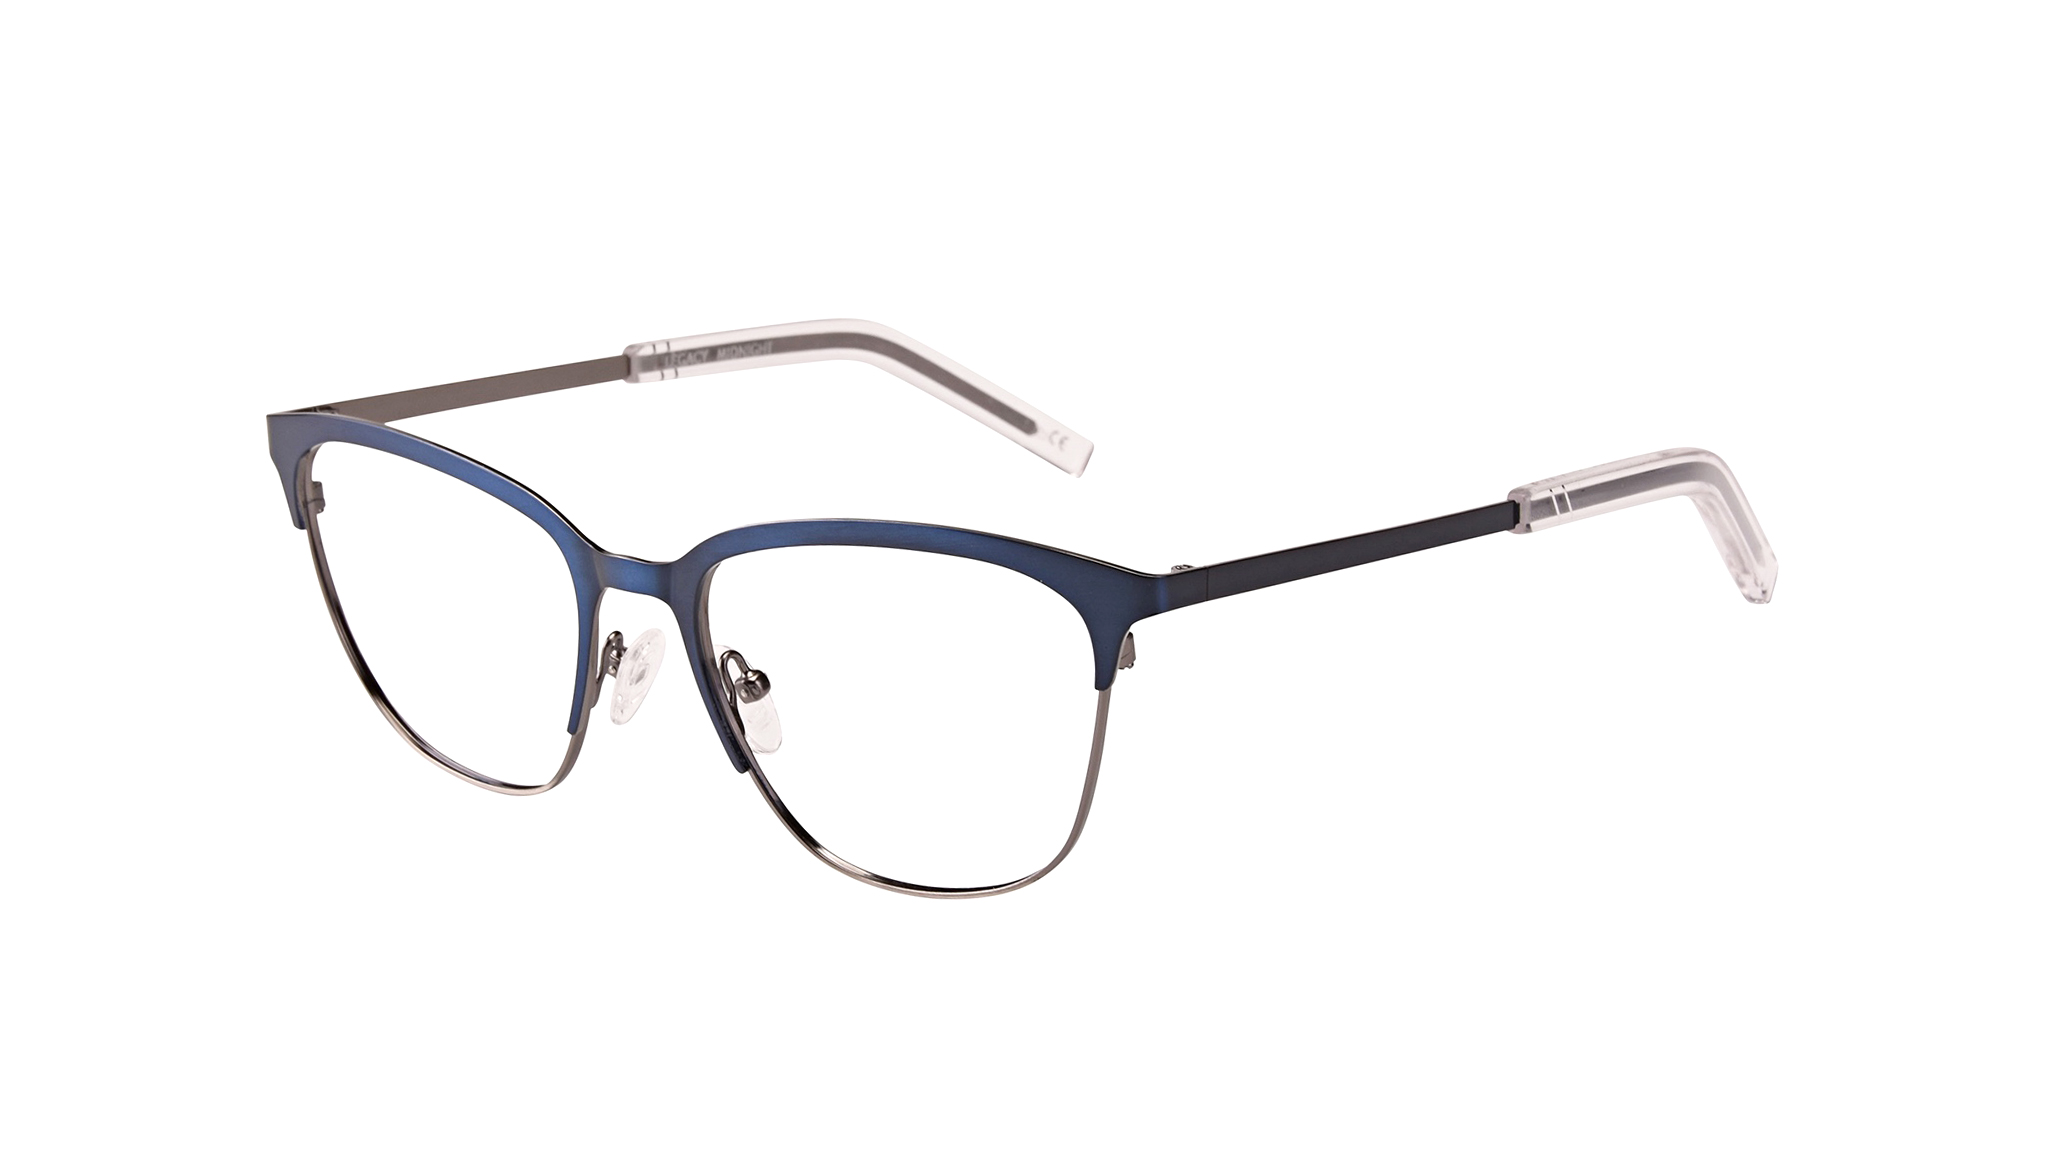 d64997a2e719 Affordable fashion glasses rectangle eyeglasses men legacy midnight tilt  jpg 1600x707 Mlg glasses tilted